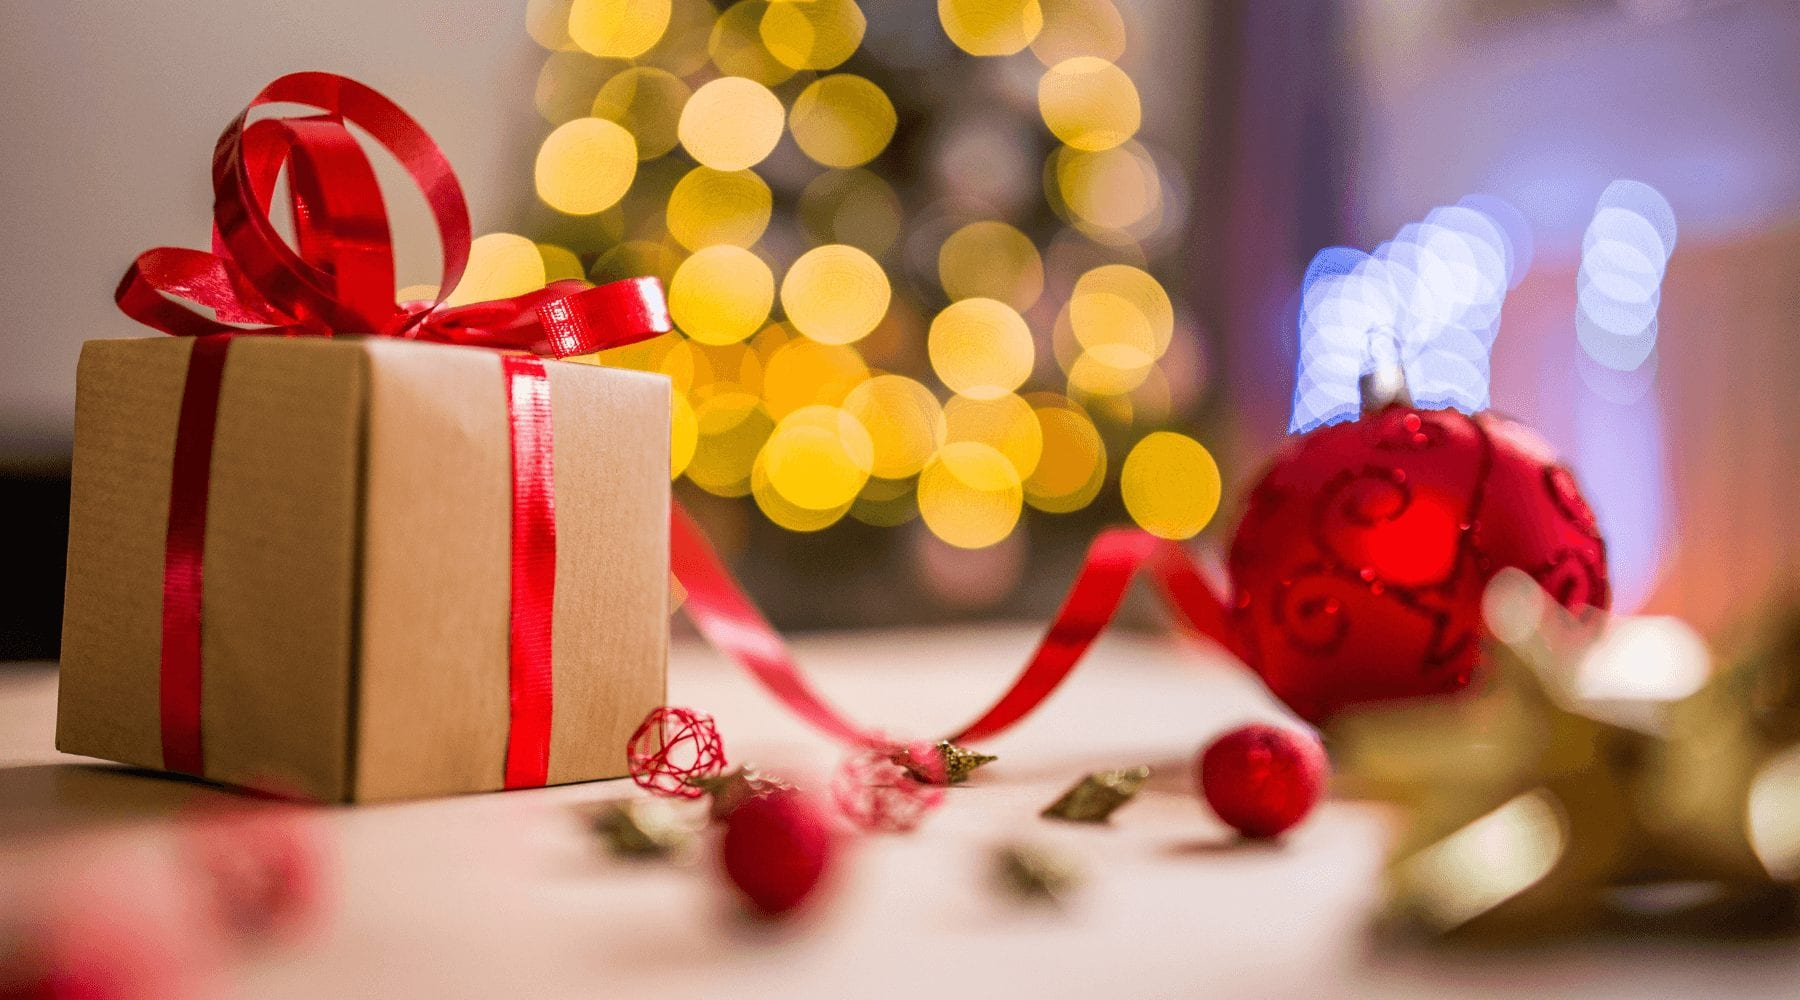 7 Tips for Healthy Holiday Shopping